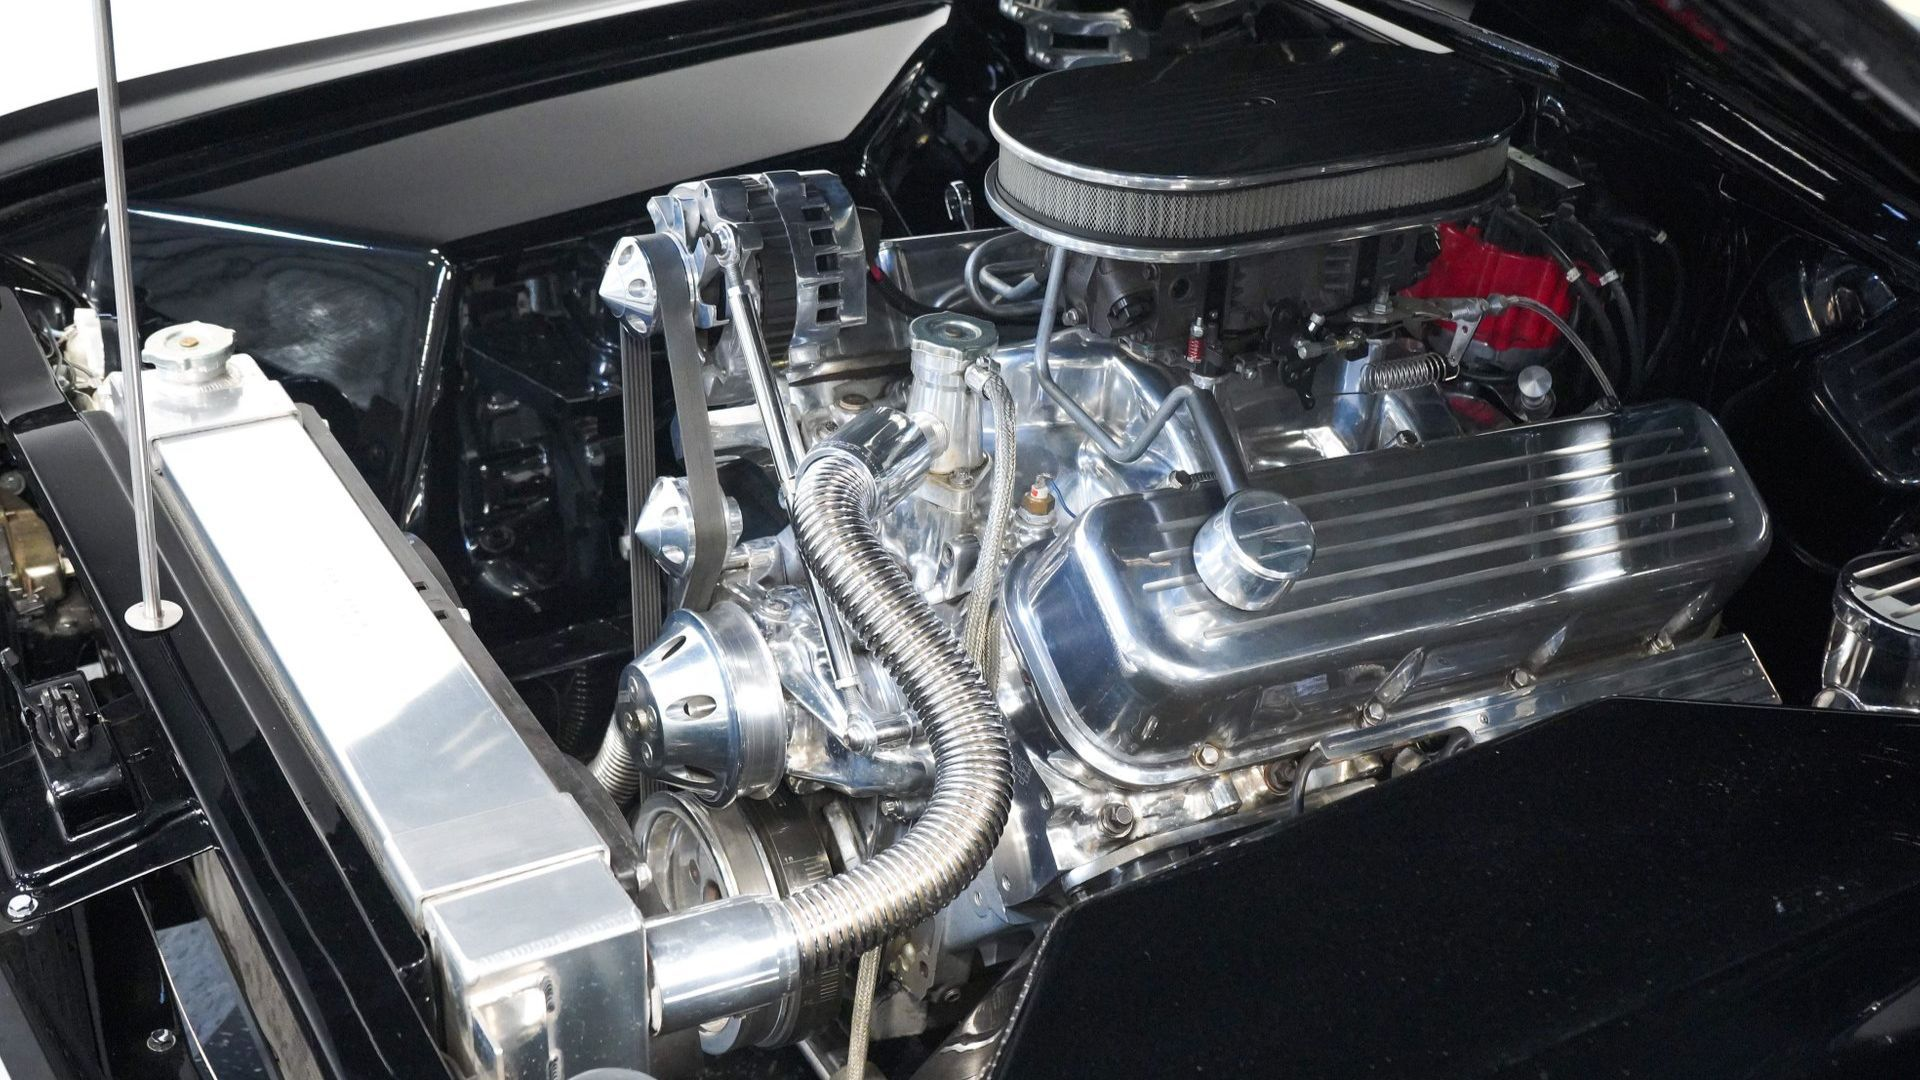 600-HP 1962 Chevy Nova Restomod Will Blow Your Mind